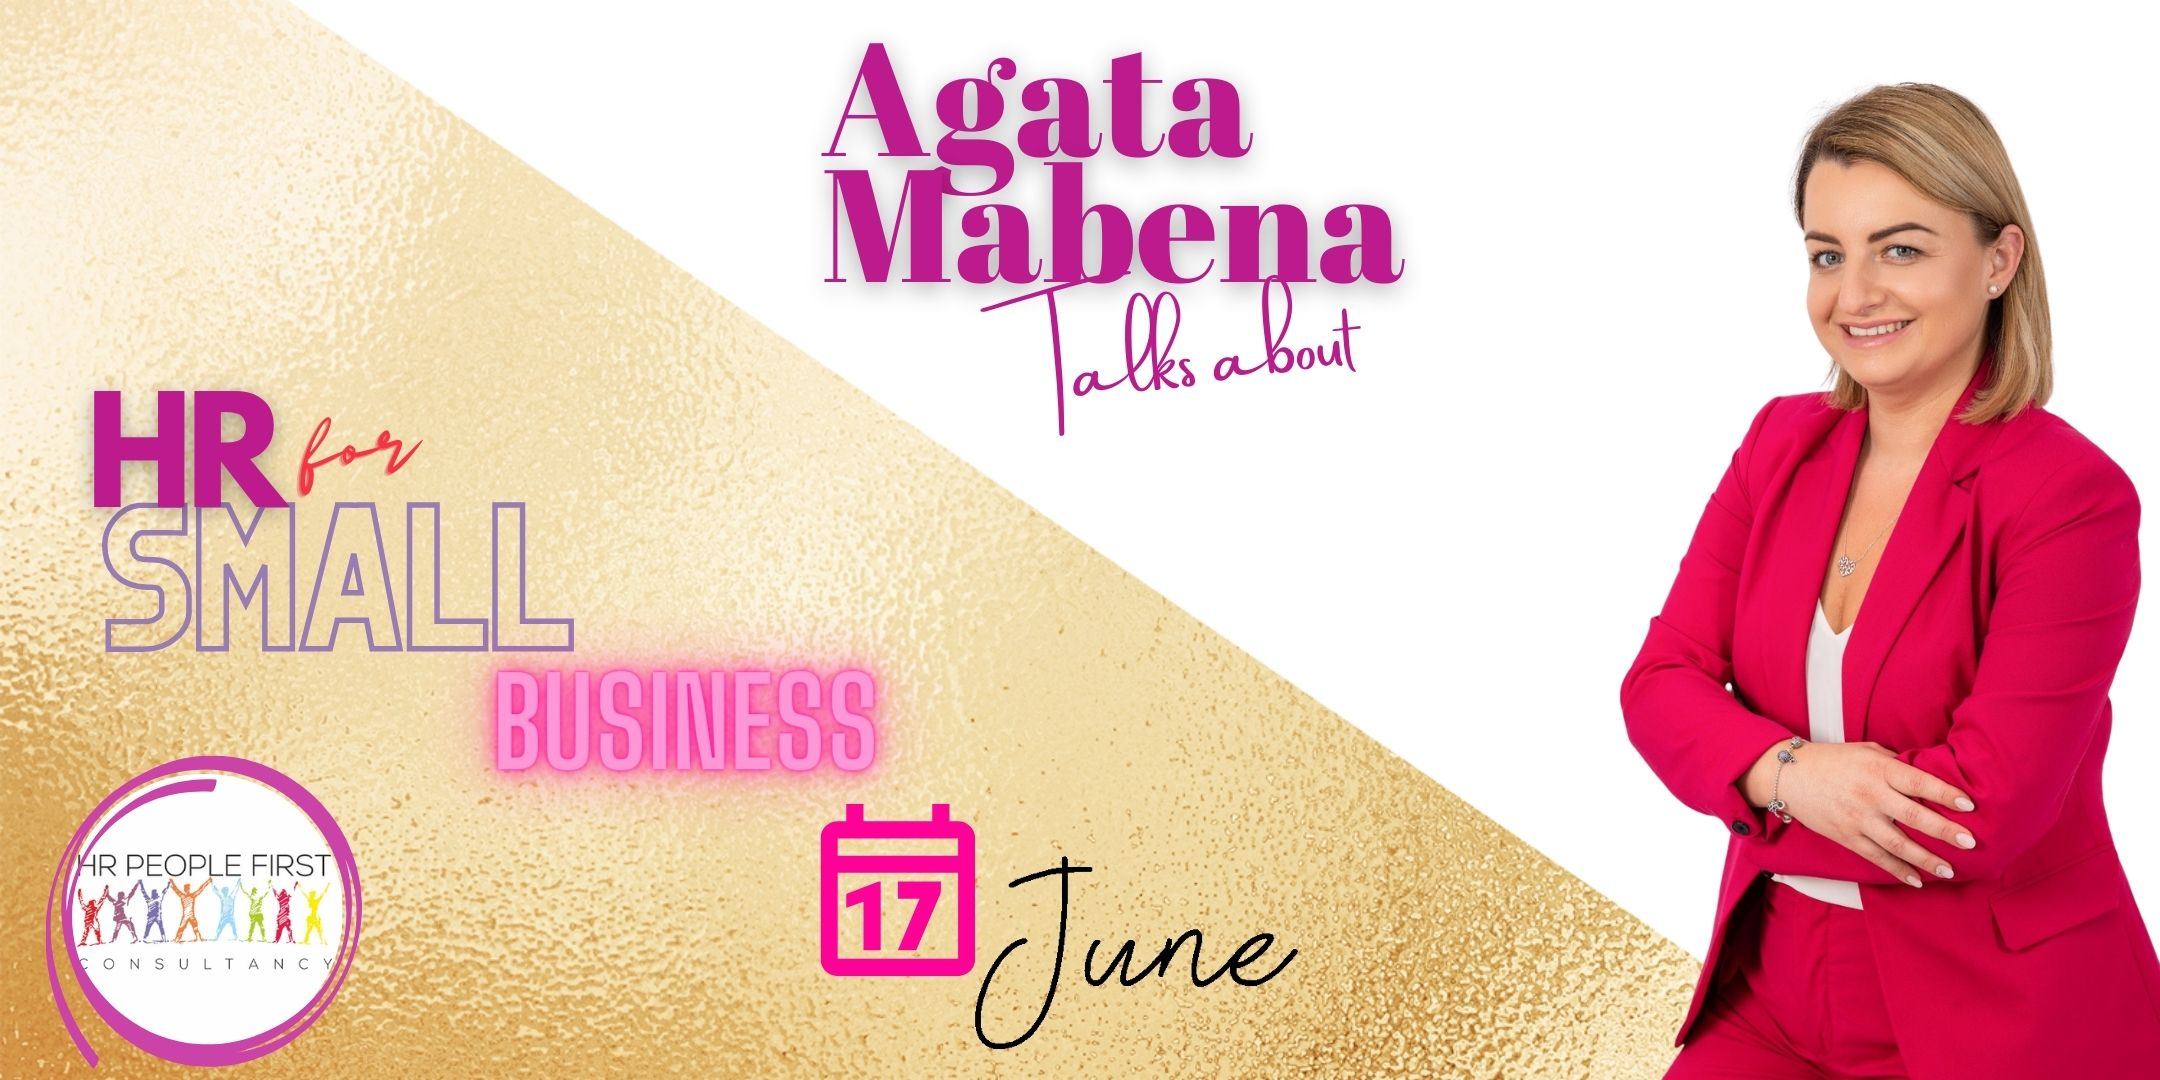 WBL Insights: HR for Small Business by Agata Mabena